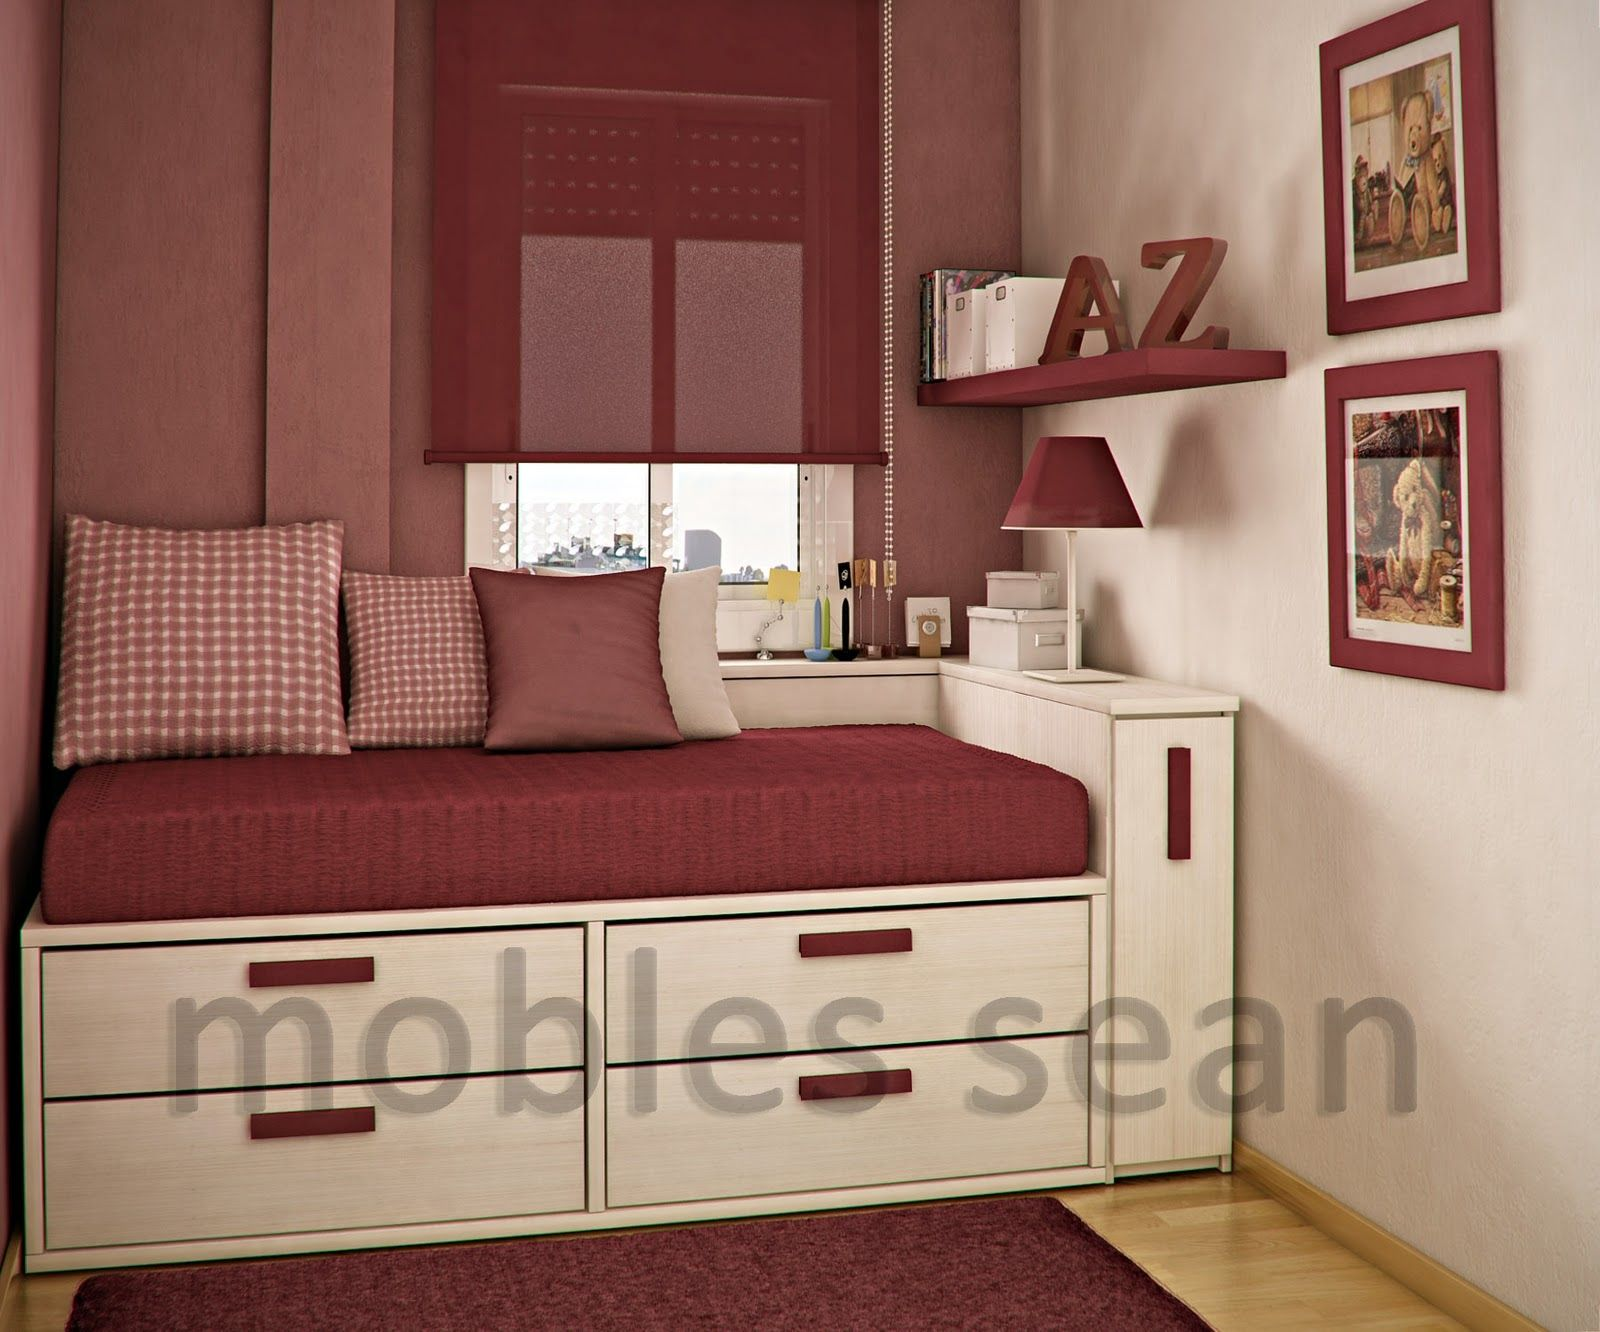 Space Saving Designs For Small Kids Rooms Very Small Bedroom Small Room Design Bedroom Decor Cozy